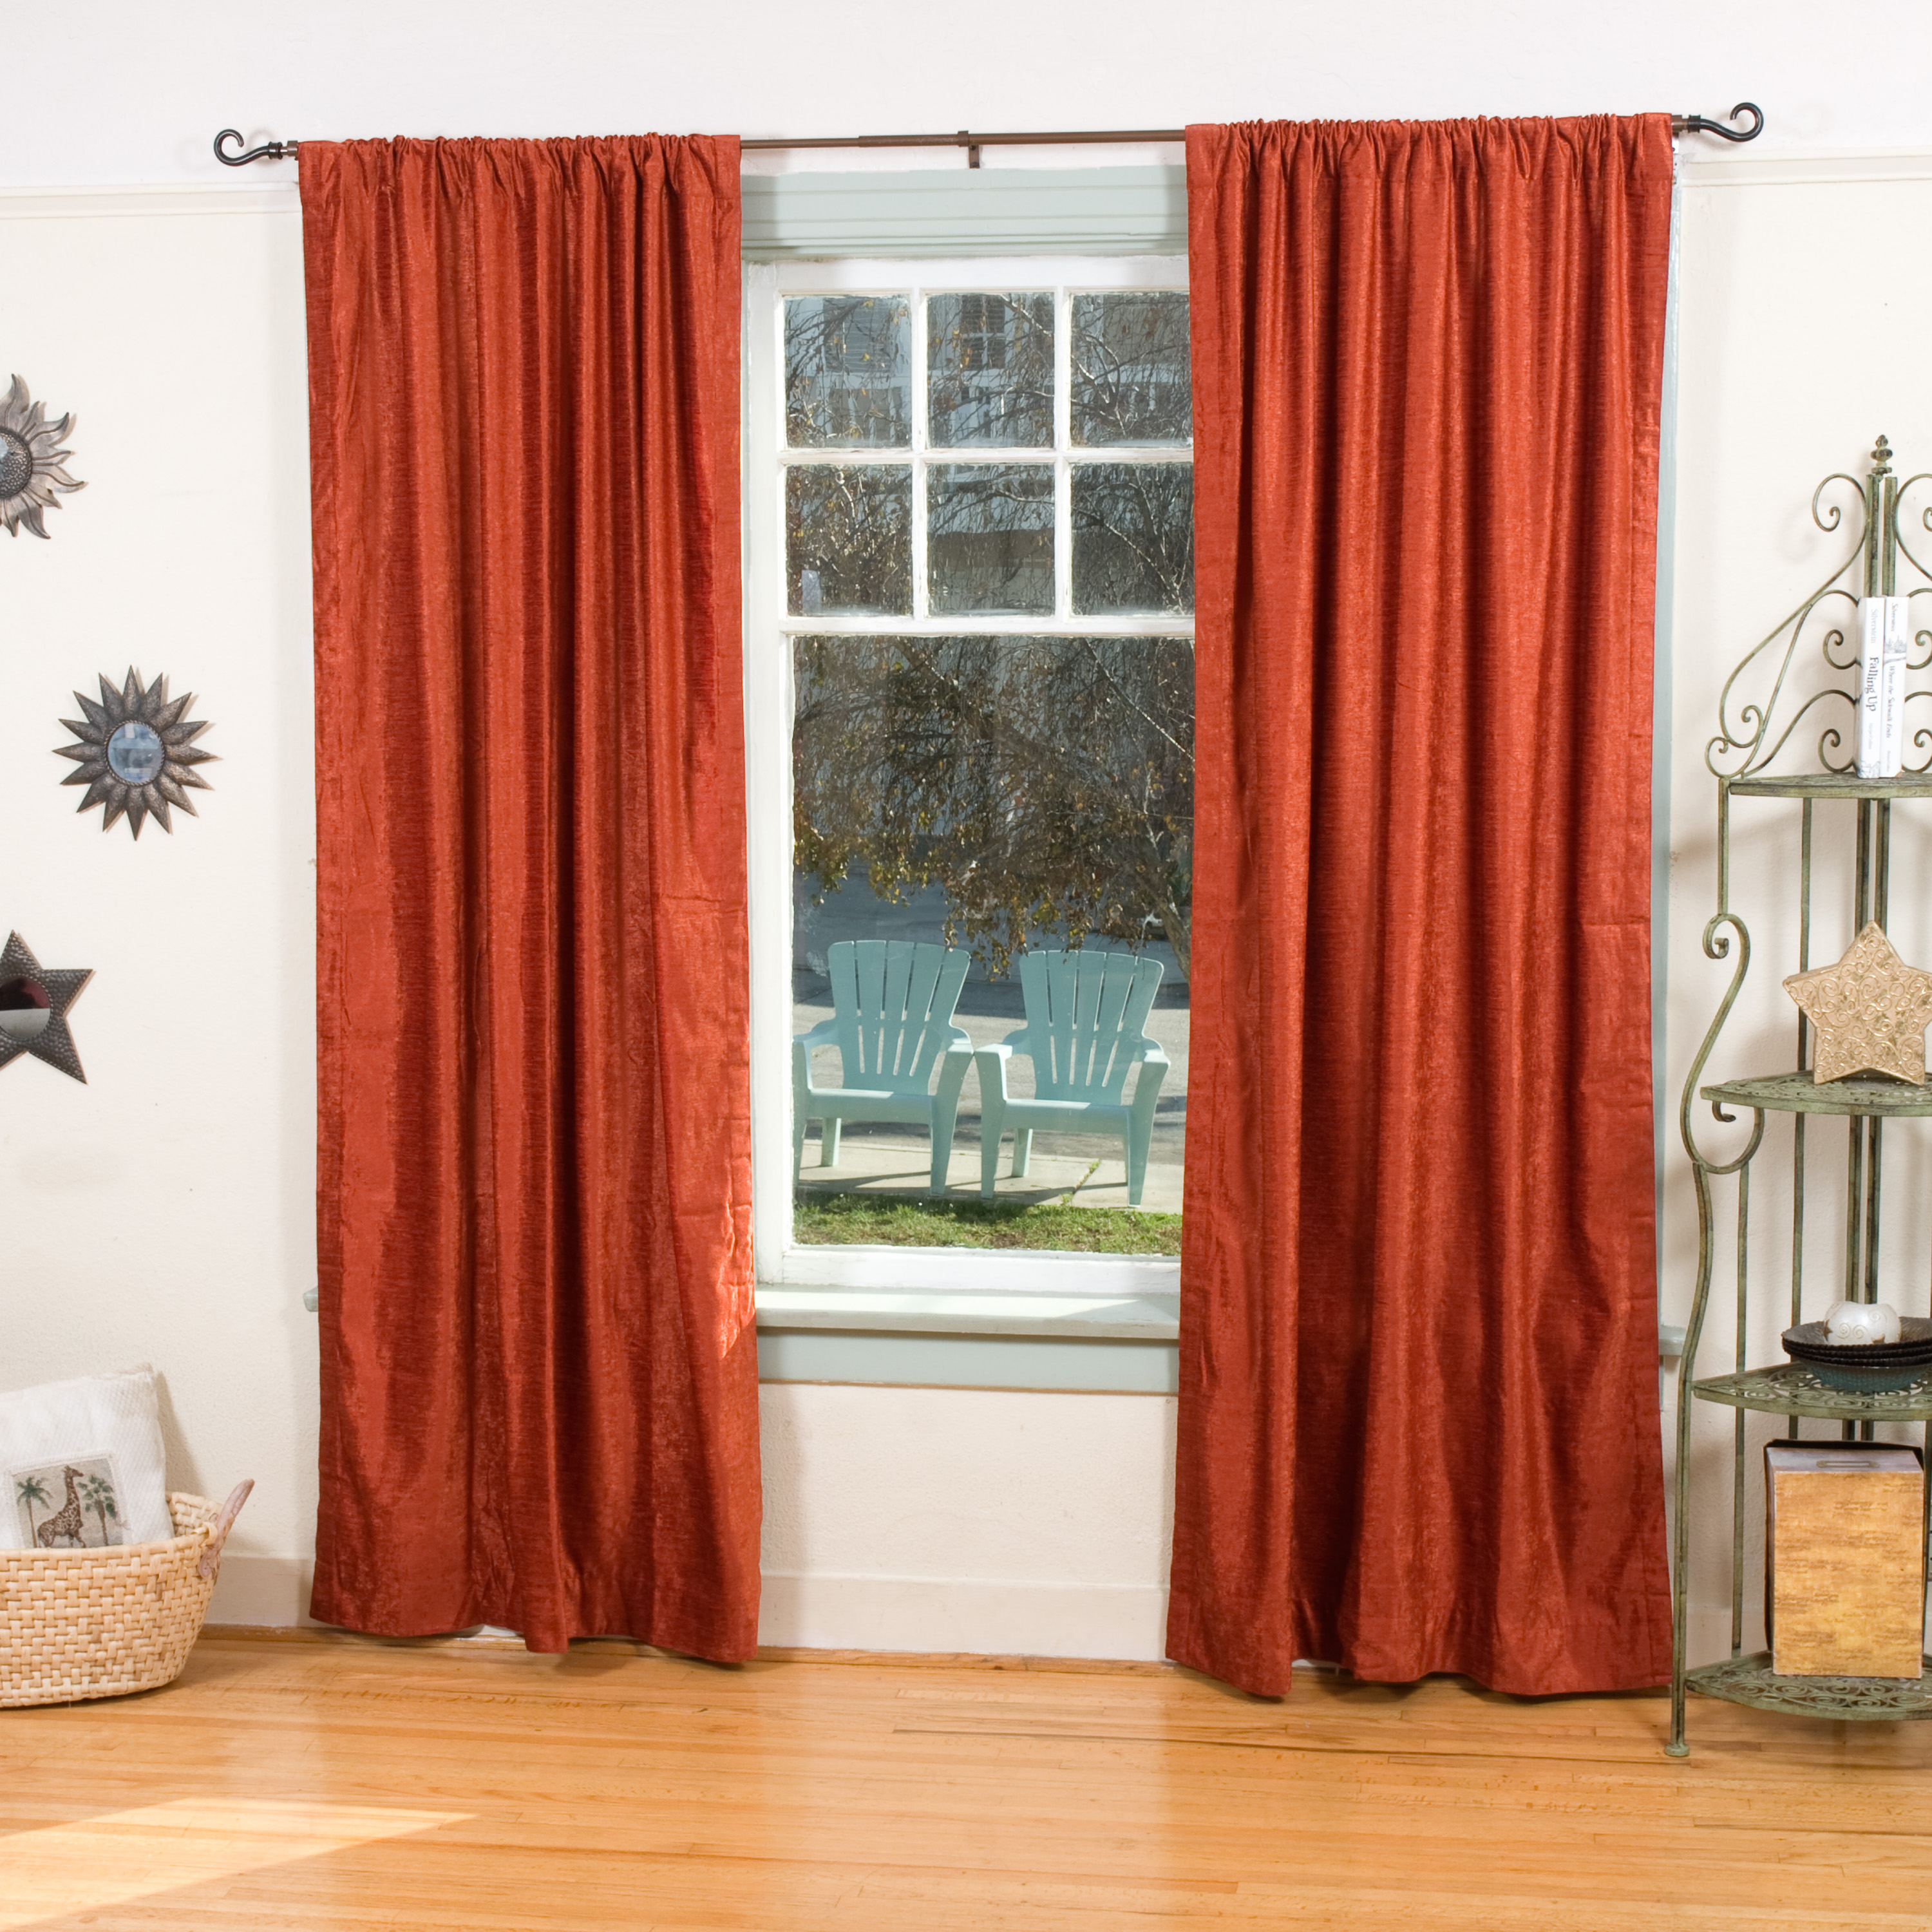 Rust Rod Pocket Velvet Curtain Drape Panel Piece Ebay